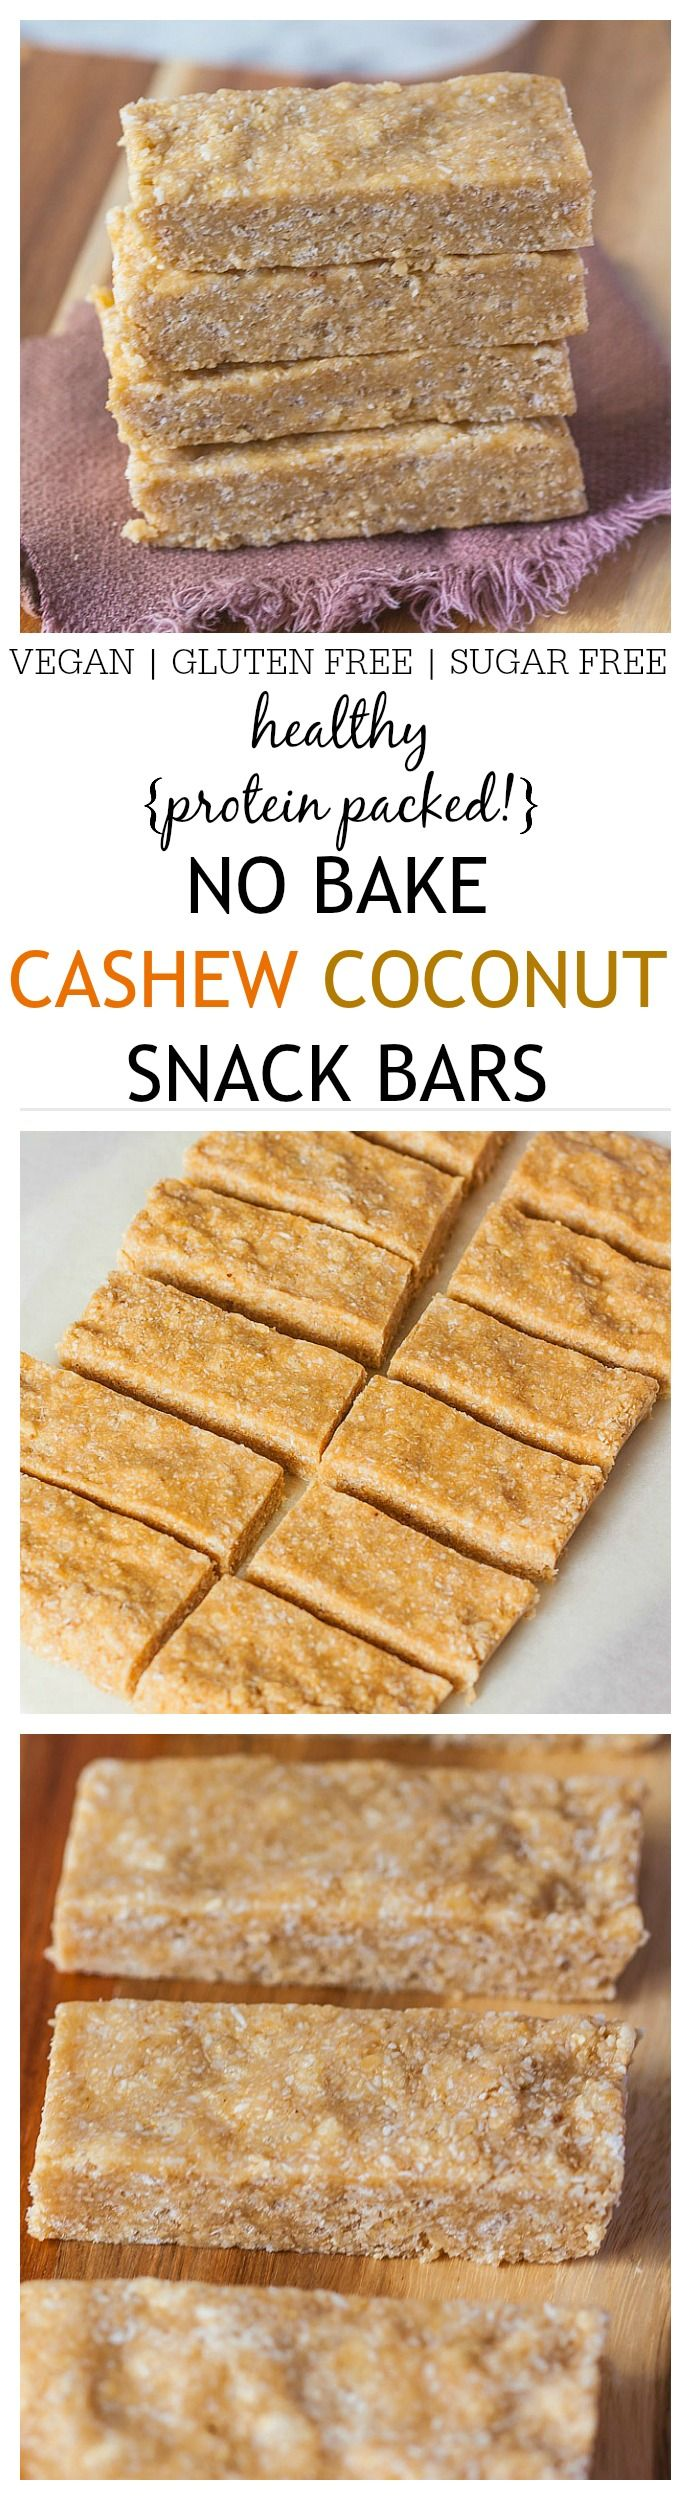 Healthy No Bake Cashew Coconut Protein Bars recipe which uses 1 bowl and takes 5 minutes- Quick, easy and No food processor necessary AND stable at room temperature! {vegan, gluten free} -thebigmansworld.com